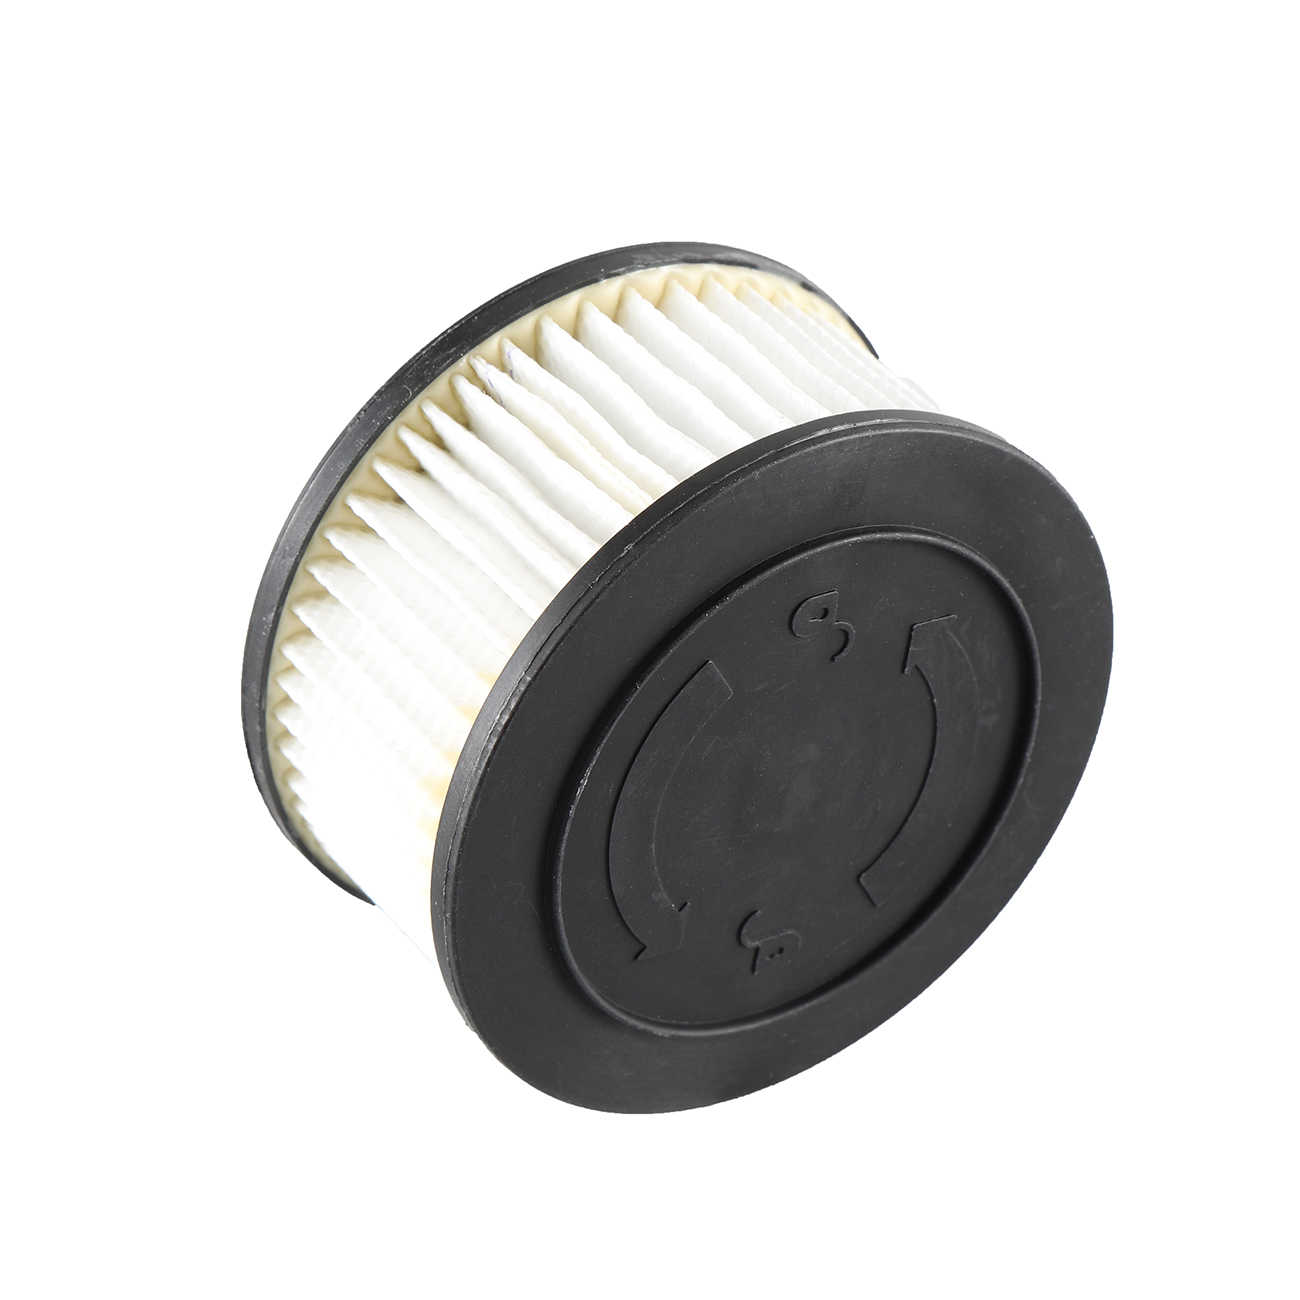 Air Filter For Stihl MS261 MS271 MS291 MS311 MS381 MS391 Chainsaw 1141  120 1600